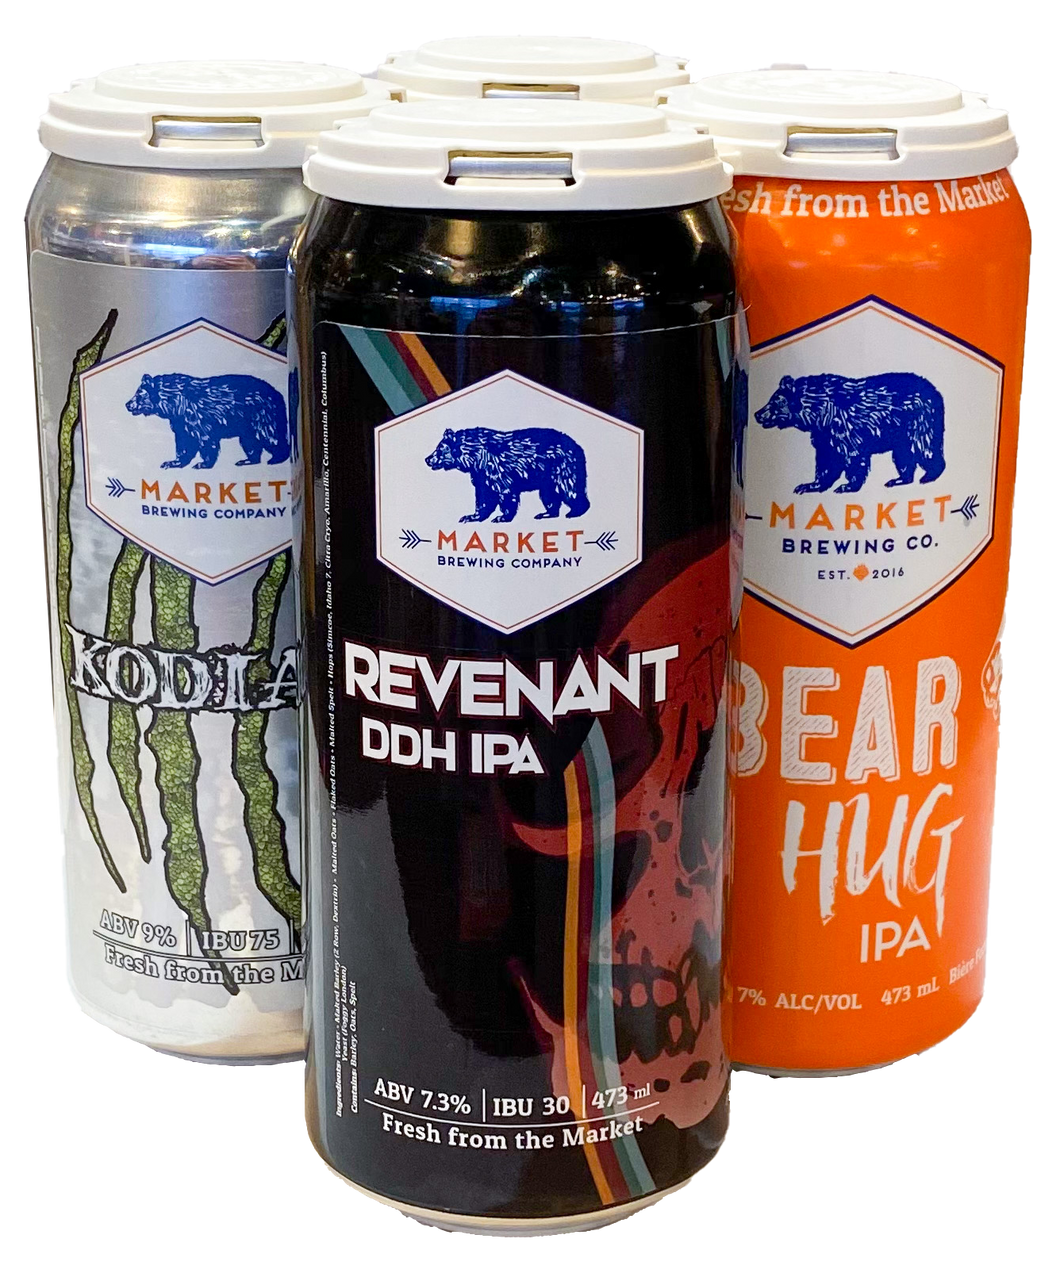 Bear Hug's Birthday Mixed IPA 4 Pack - $17.75